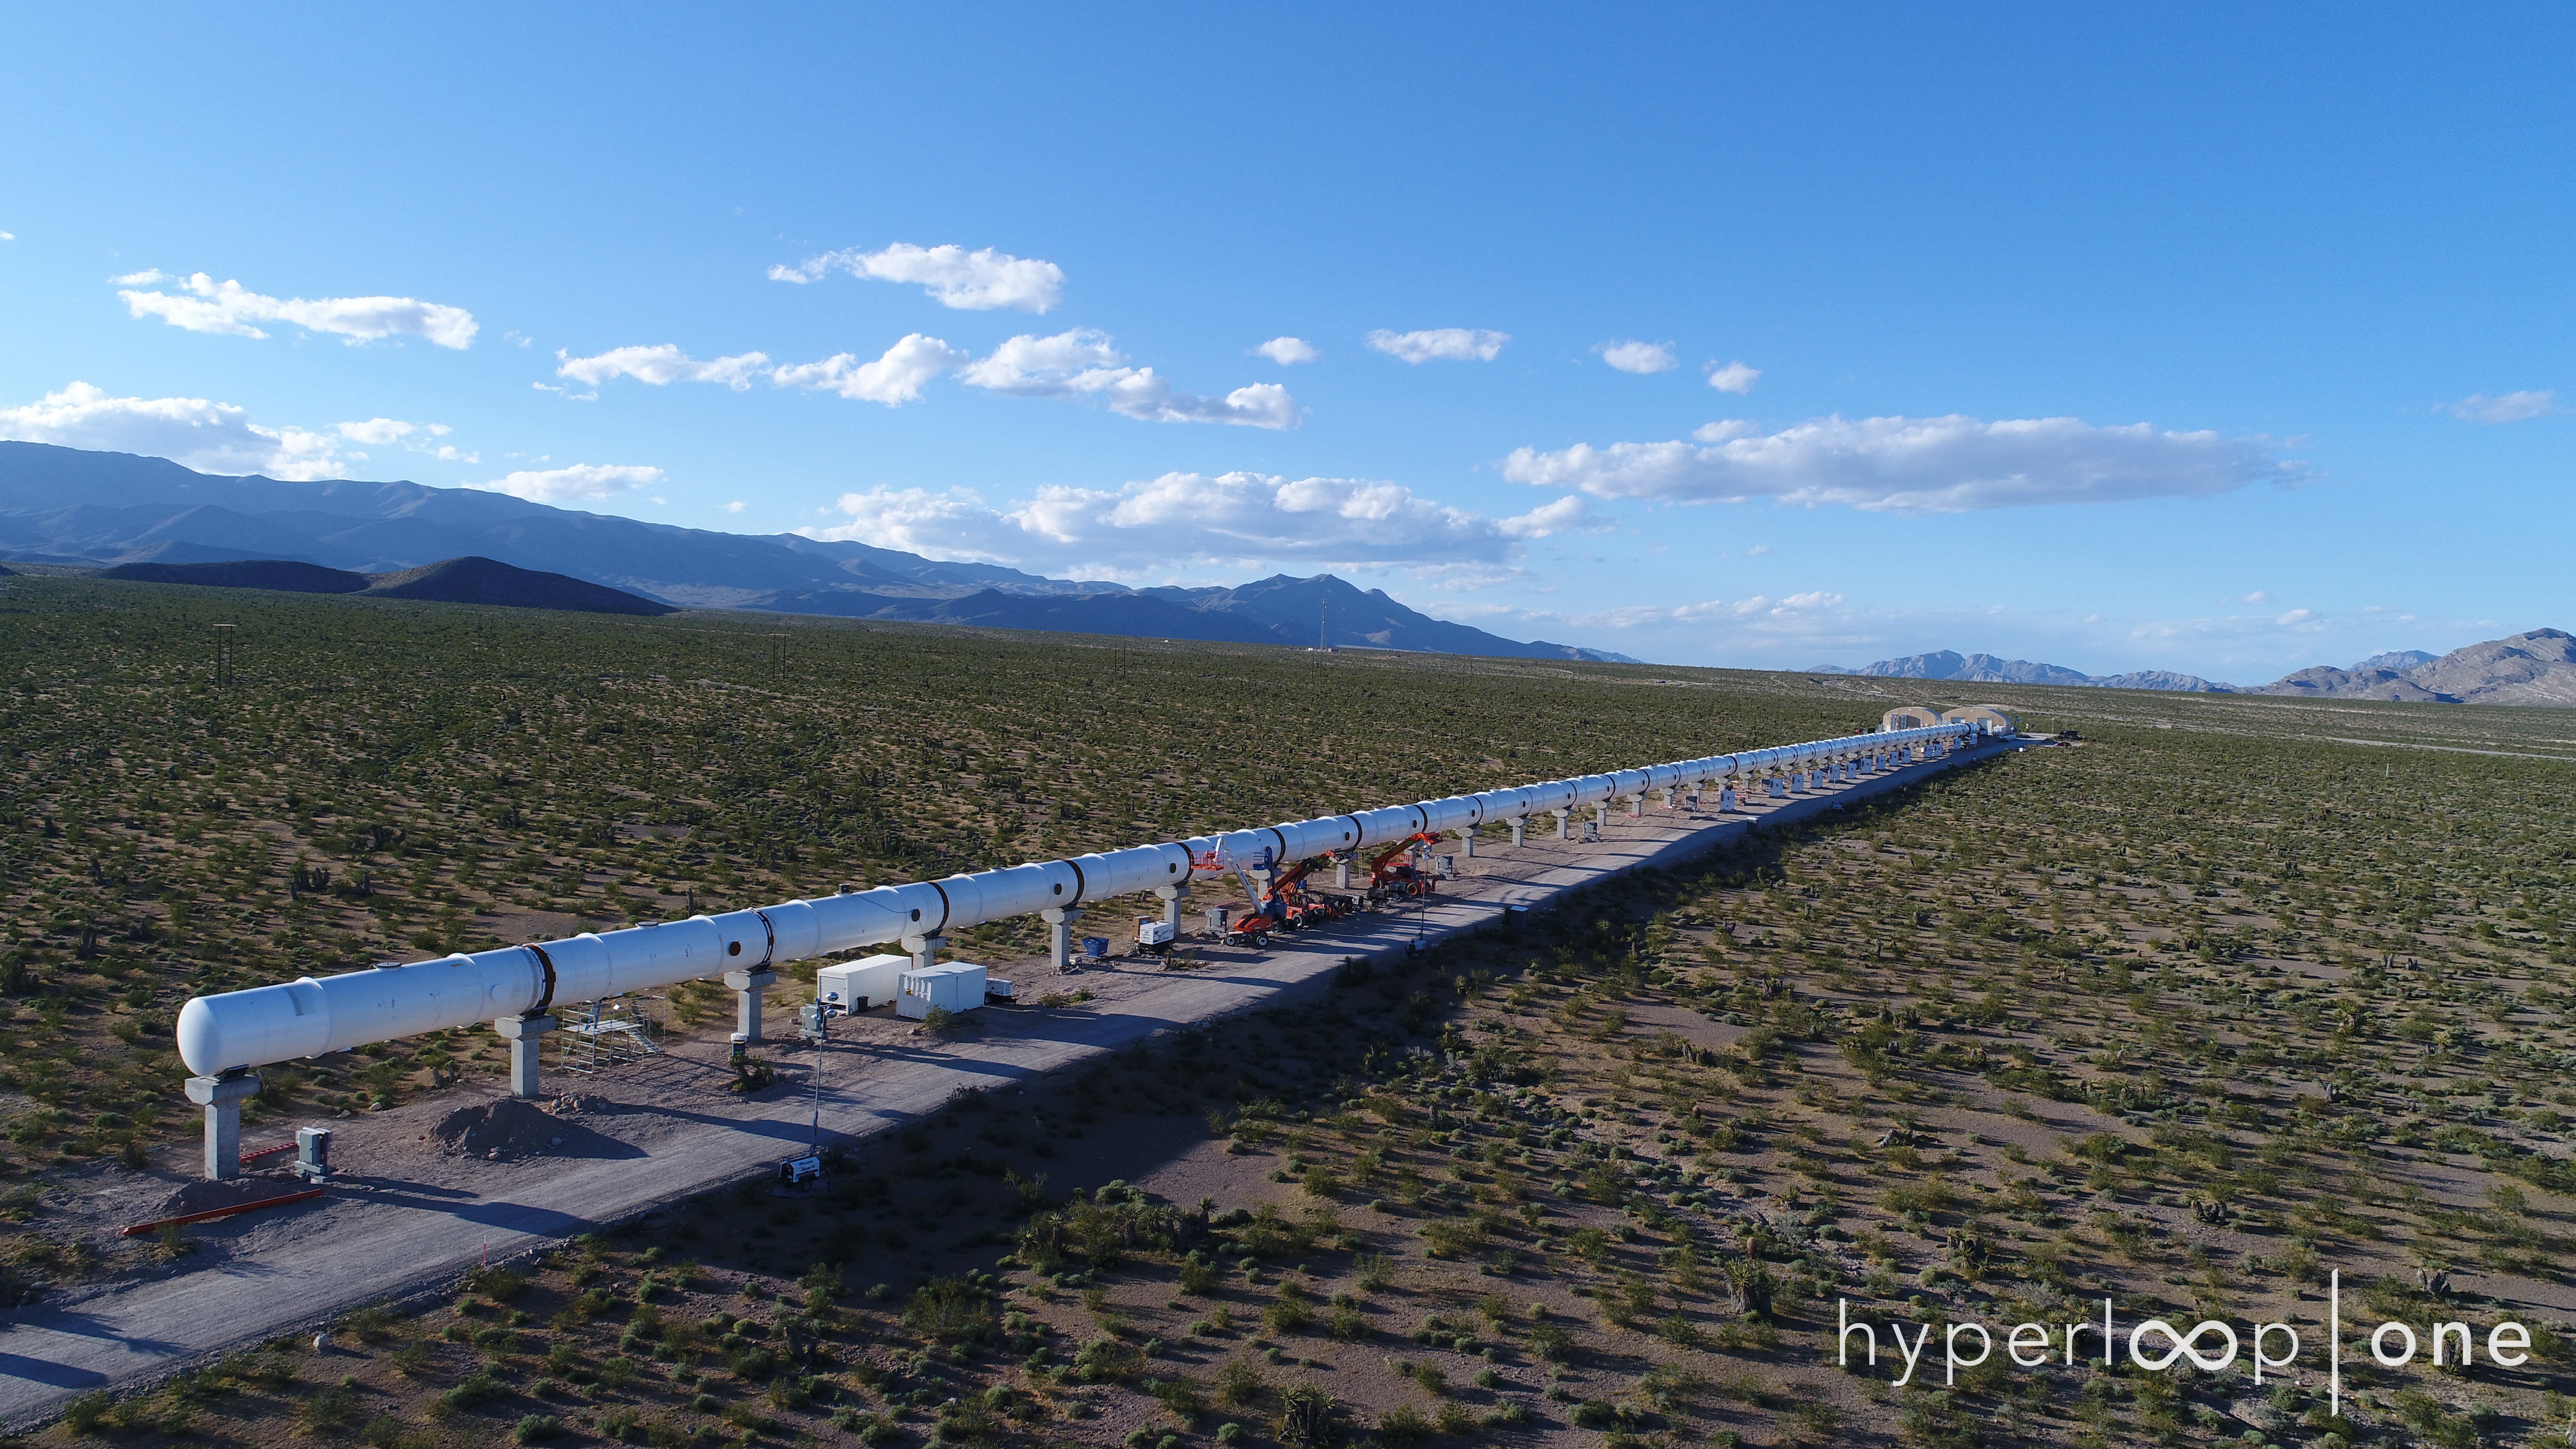 Hyperloop One tests its full-scale system for the first time